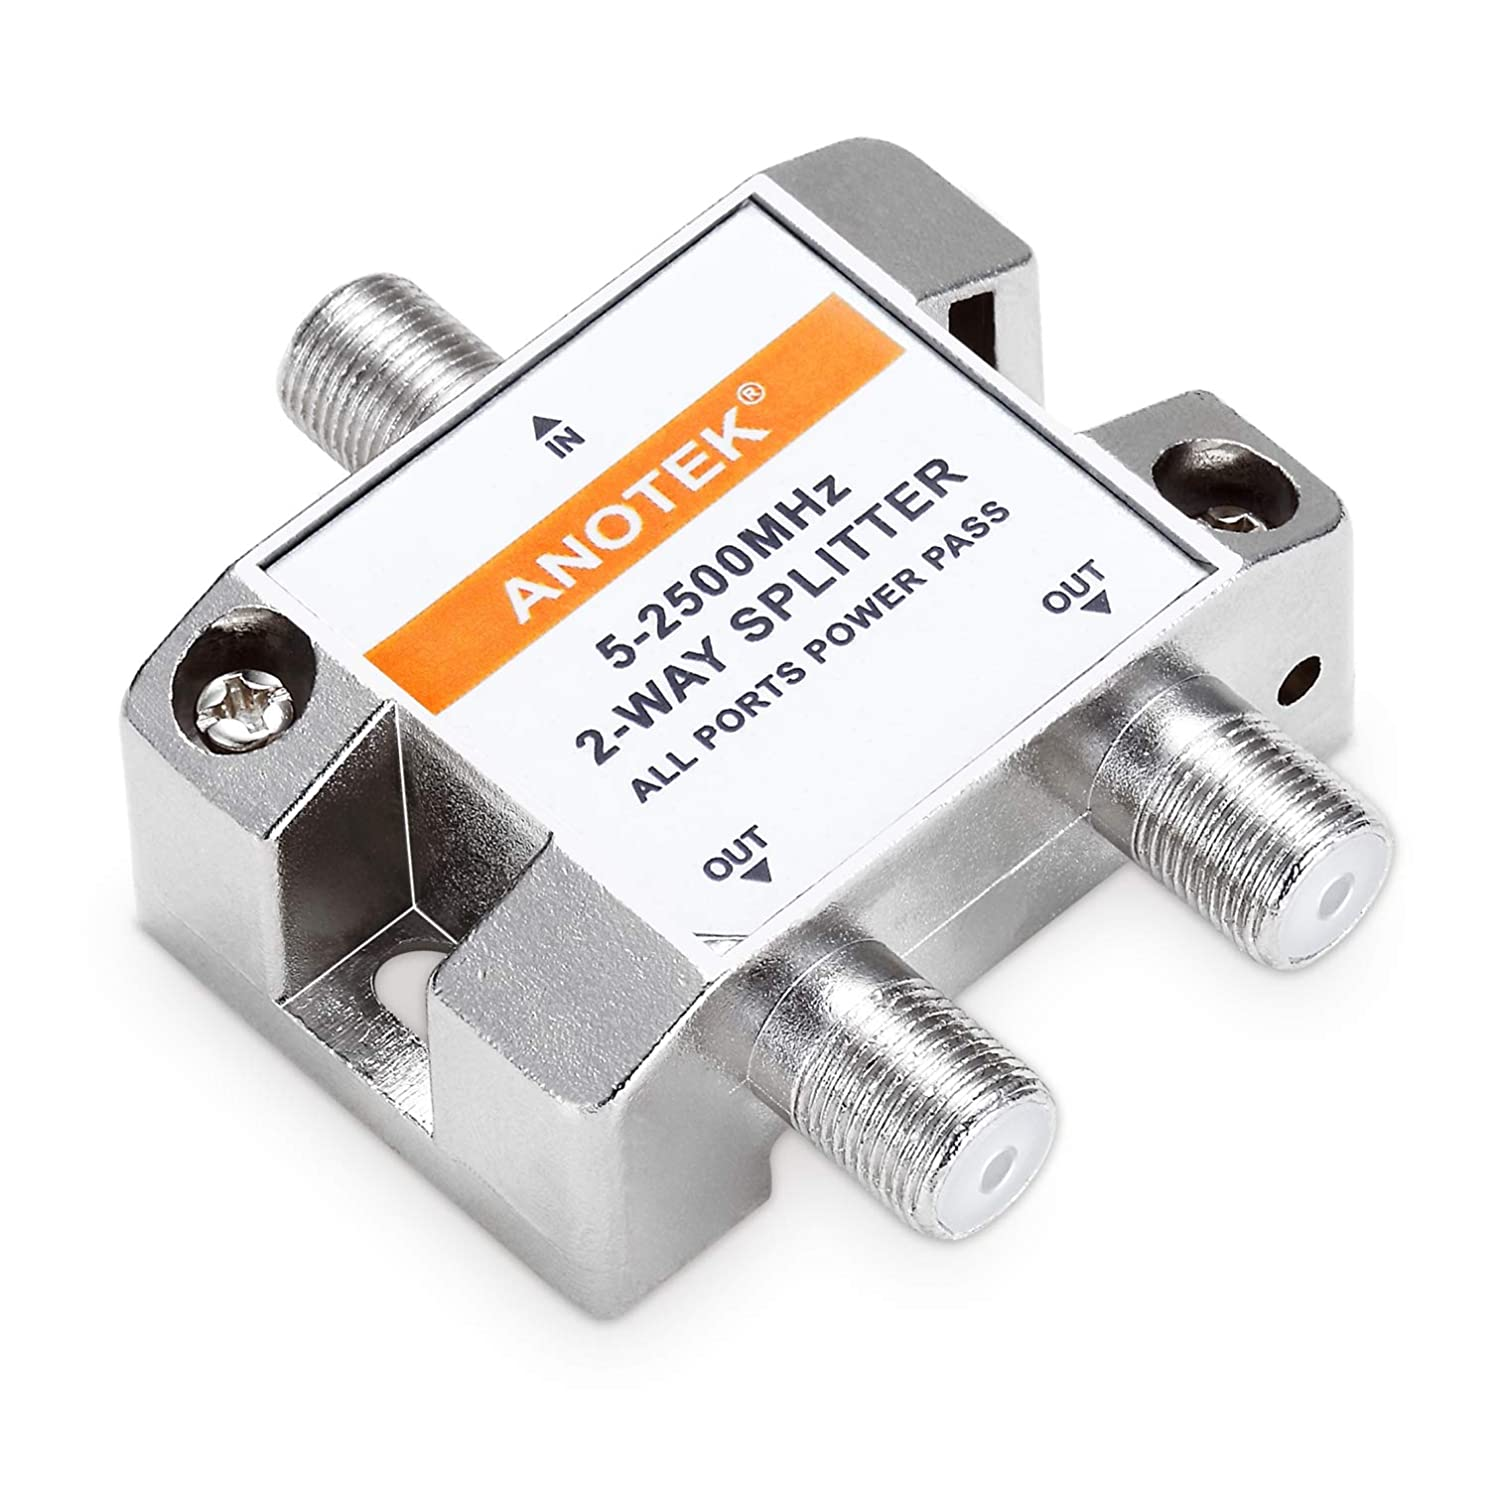 MoCA Configuration and More CATV Internet ANOTEK 2 Way Coaxial Cable Splitter for All Ports Power Pass Compatible with Antenna